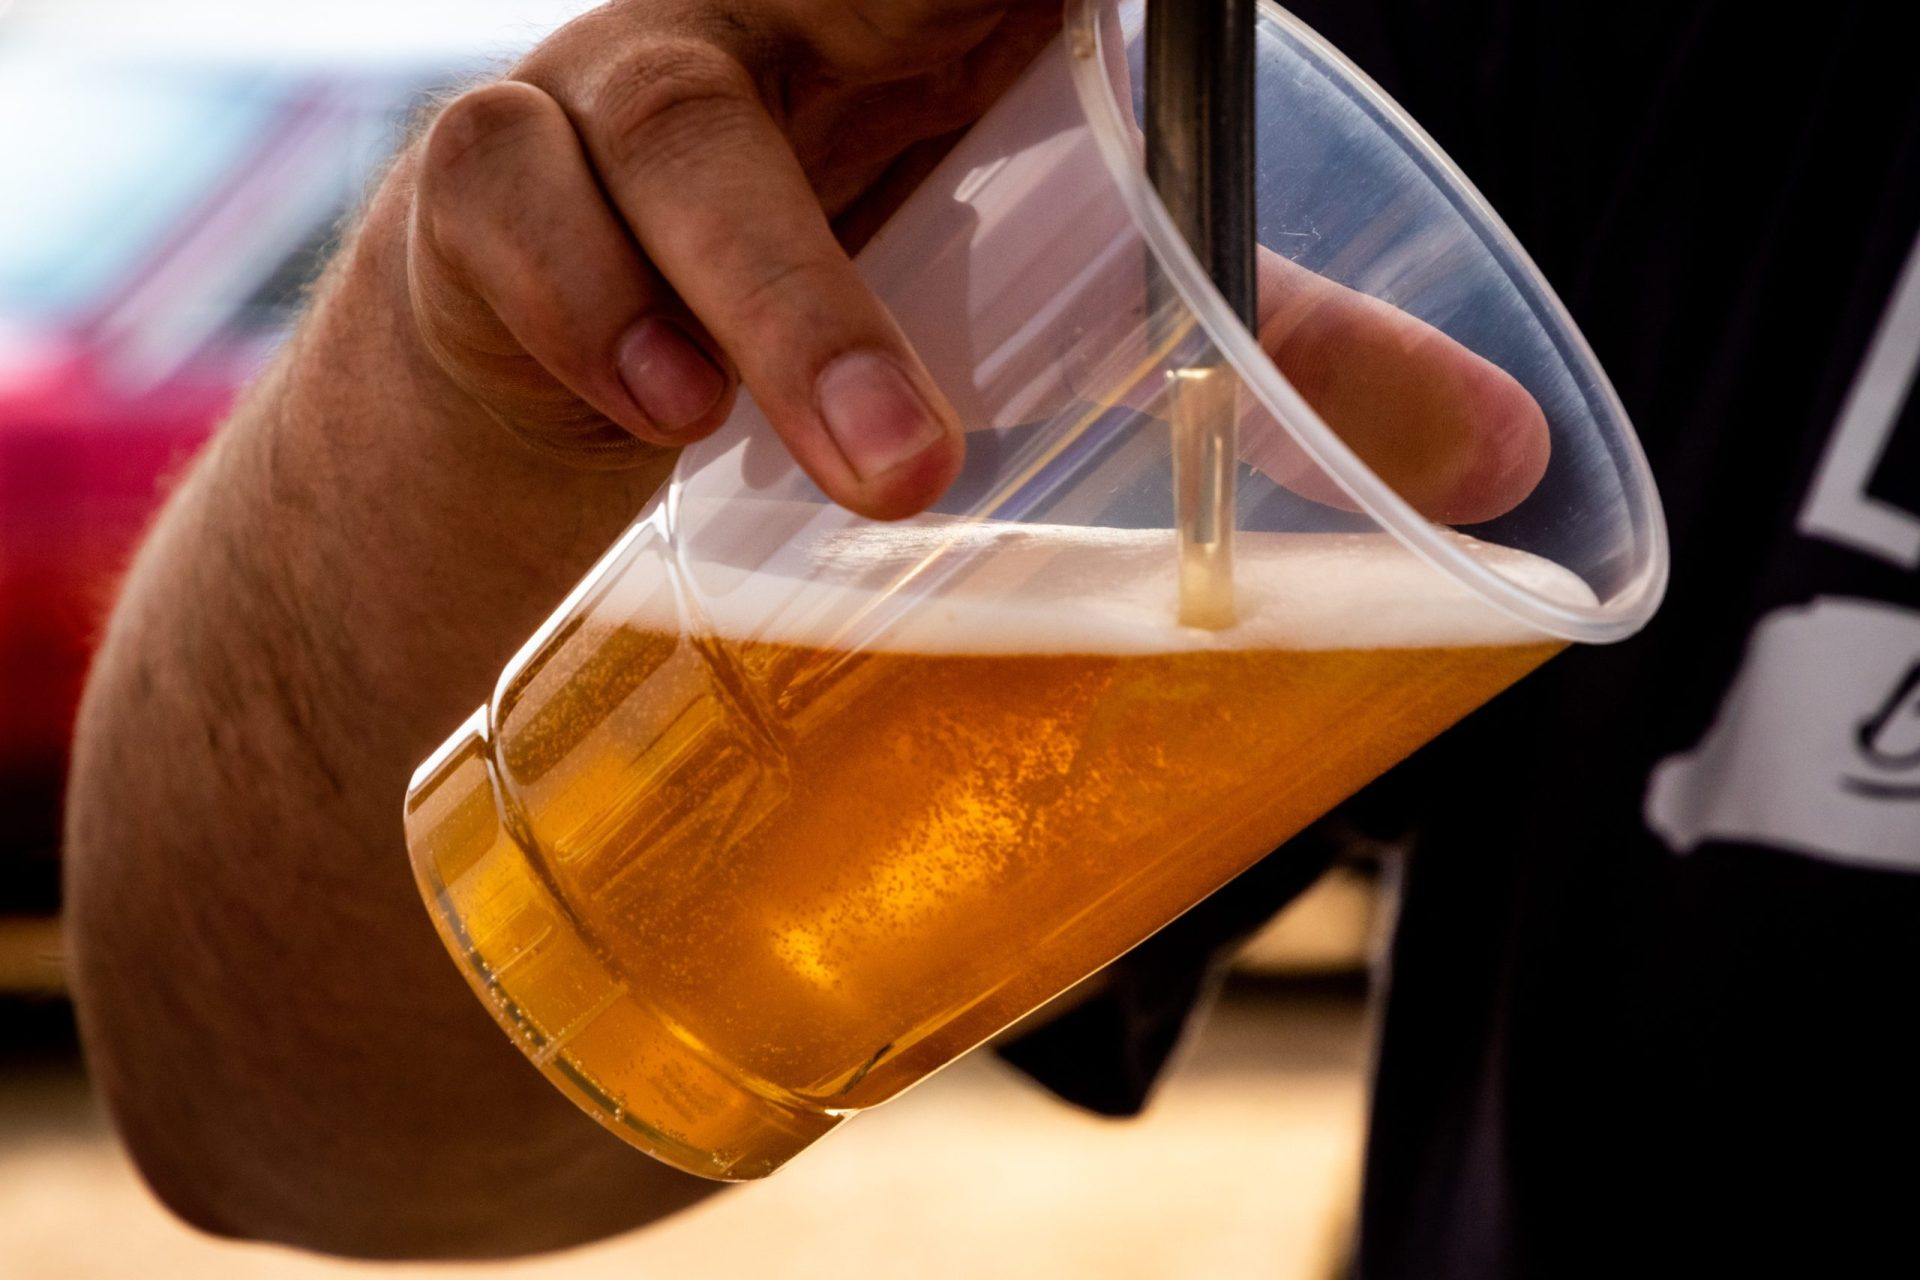 Walts Malting, South Africa's only malting company to offer specialty malts to beer brewers are closing their doors for good.